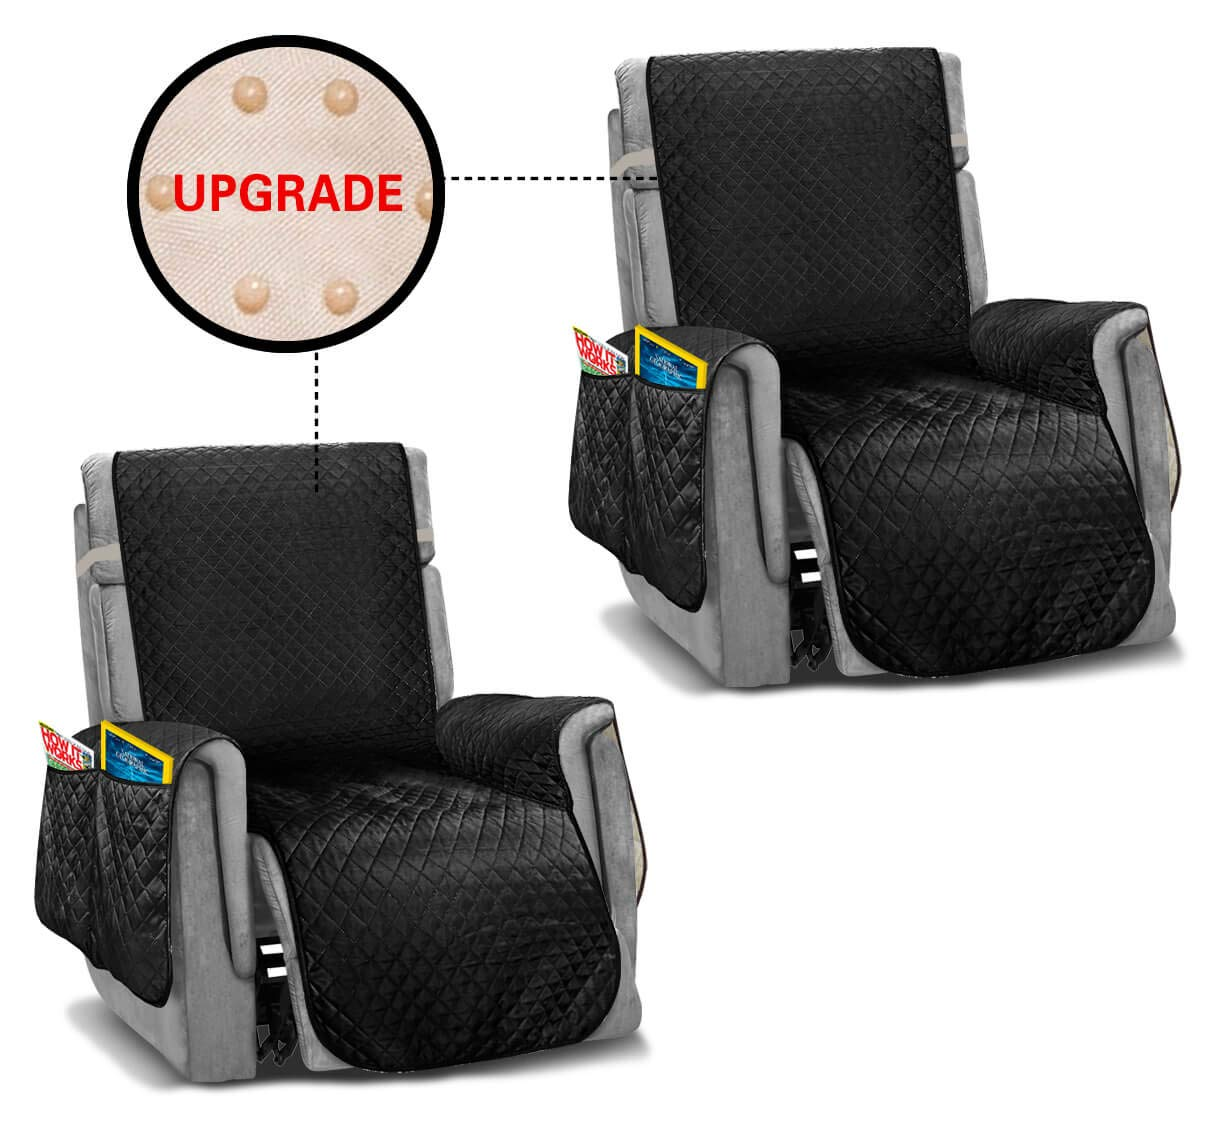 Vailge Oversized Recliner Covers, Durable Recliner Slipover with Back Non-Slip Dots,Machine Washable Recliner Covers for Dogs, Children, Pets(2 Pack, Black) by Vailge